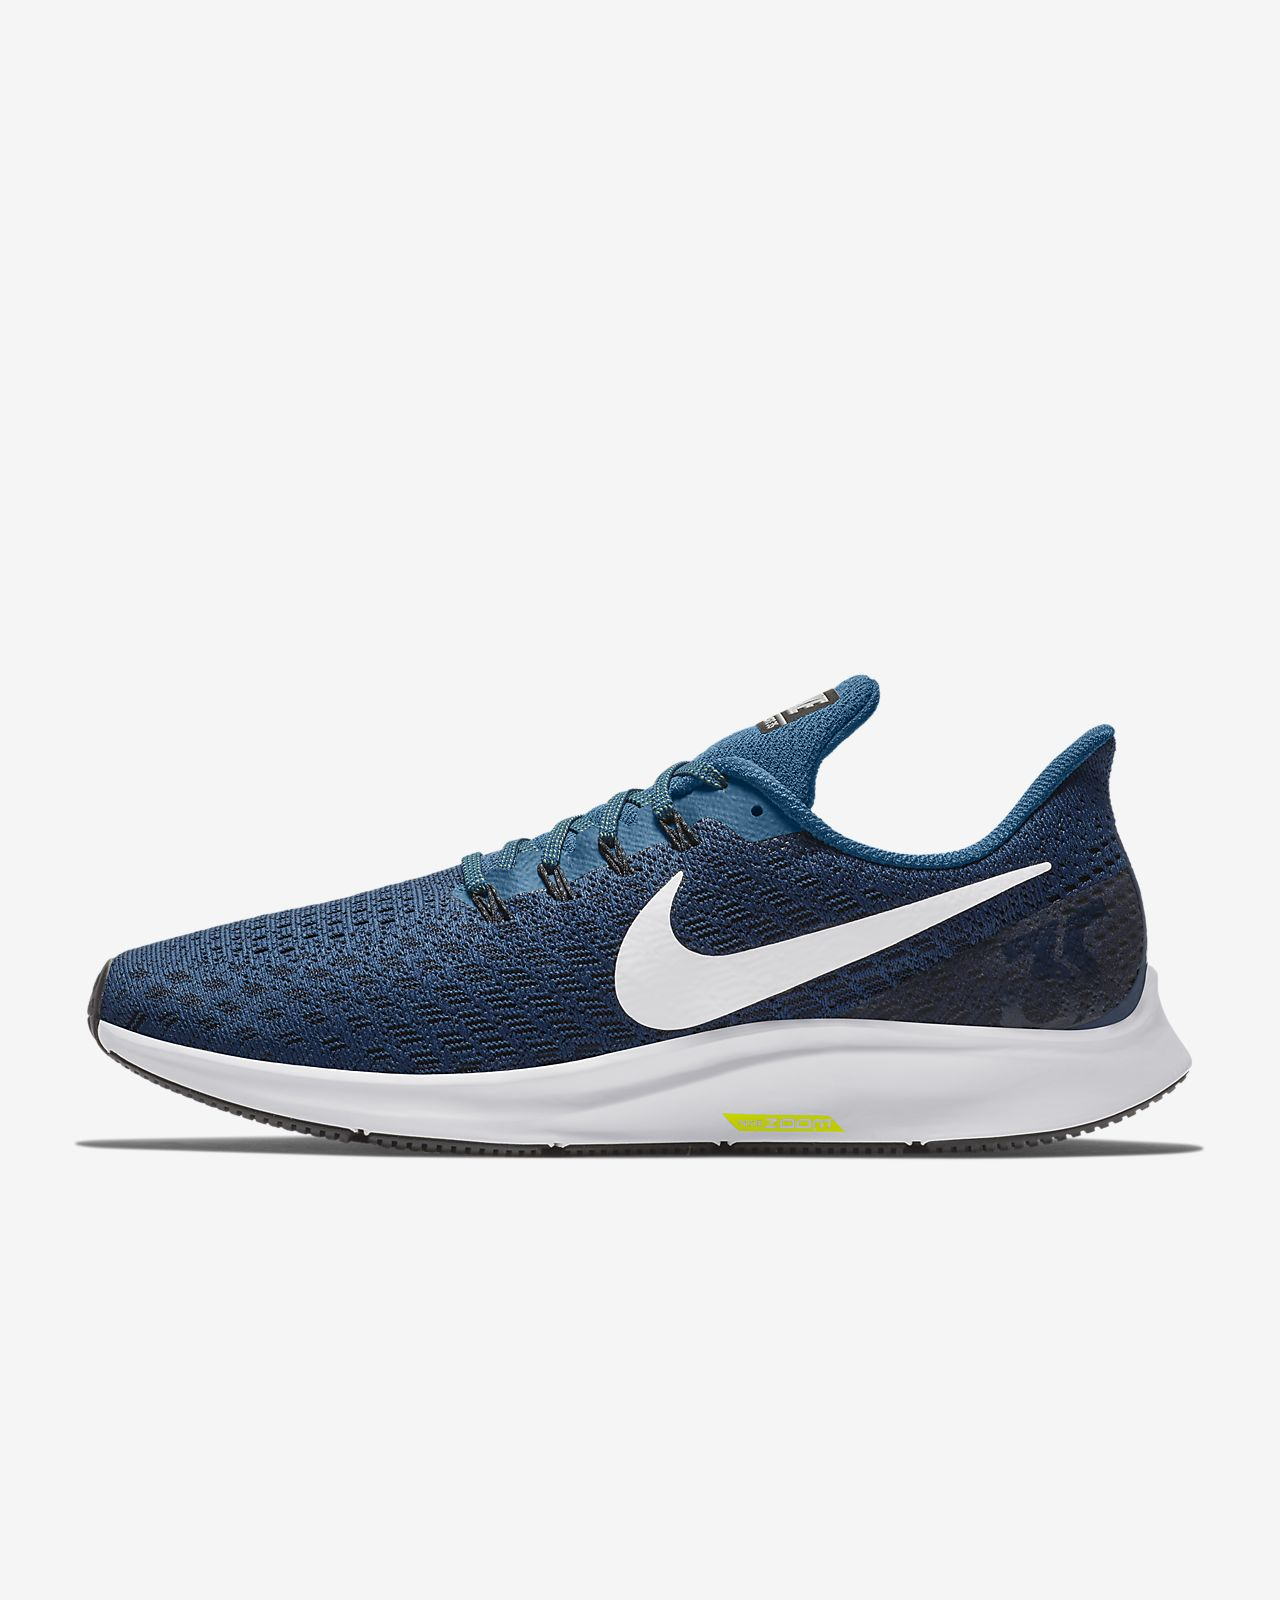 351b91a12a61bd Nike Air Zoom Pegasus 35 Men s Running Shoe. Nike.com CA